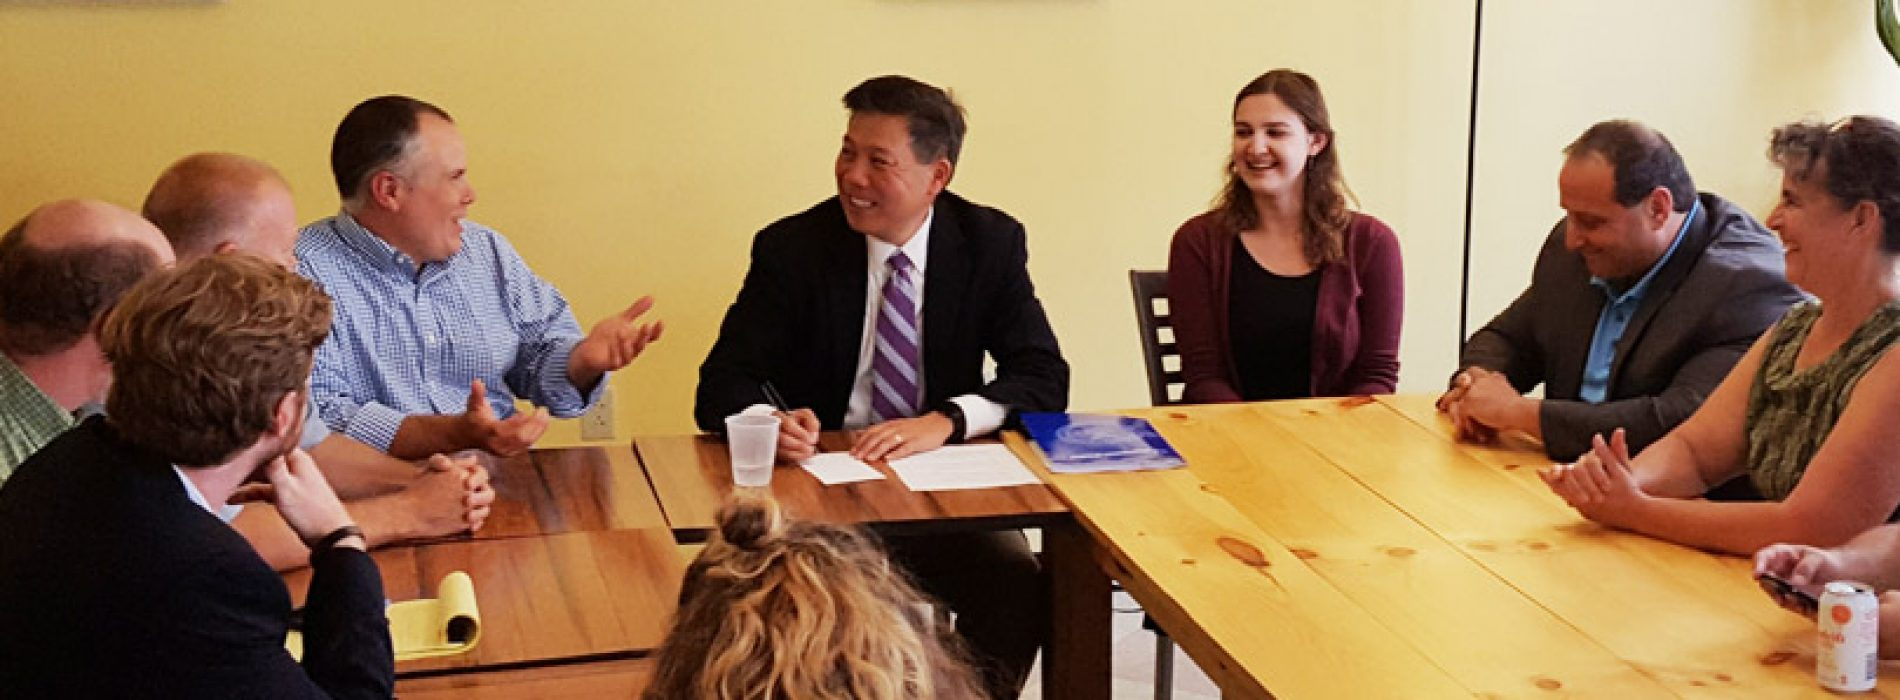 Bangor business owners to Deputy Secretary of Labor: 'It's time to raise the minimum wage'